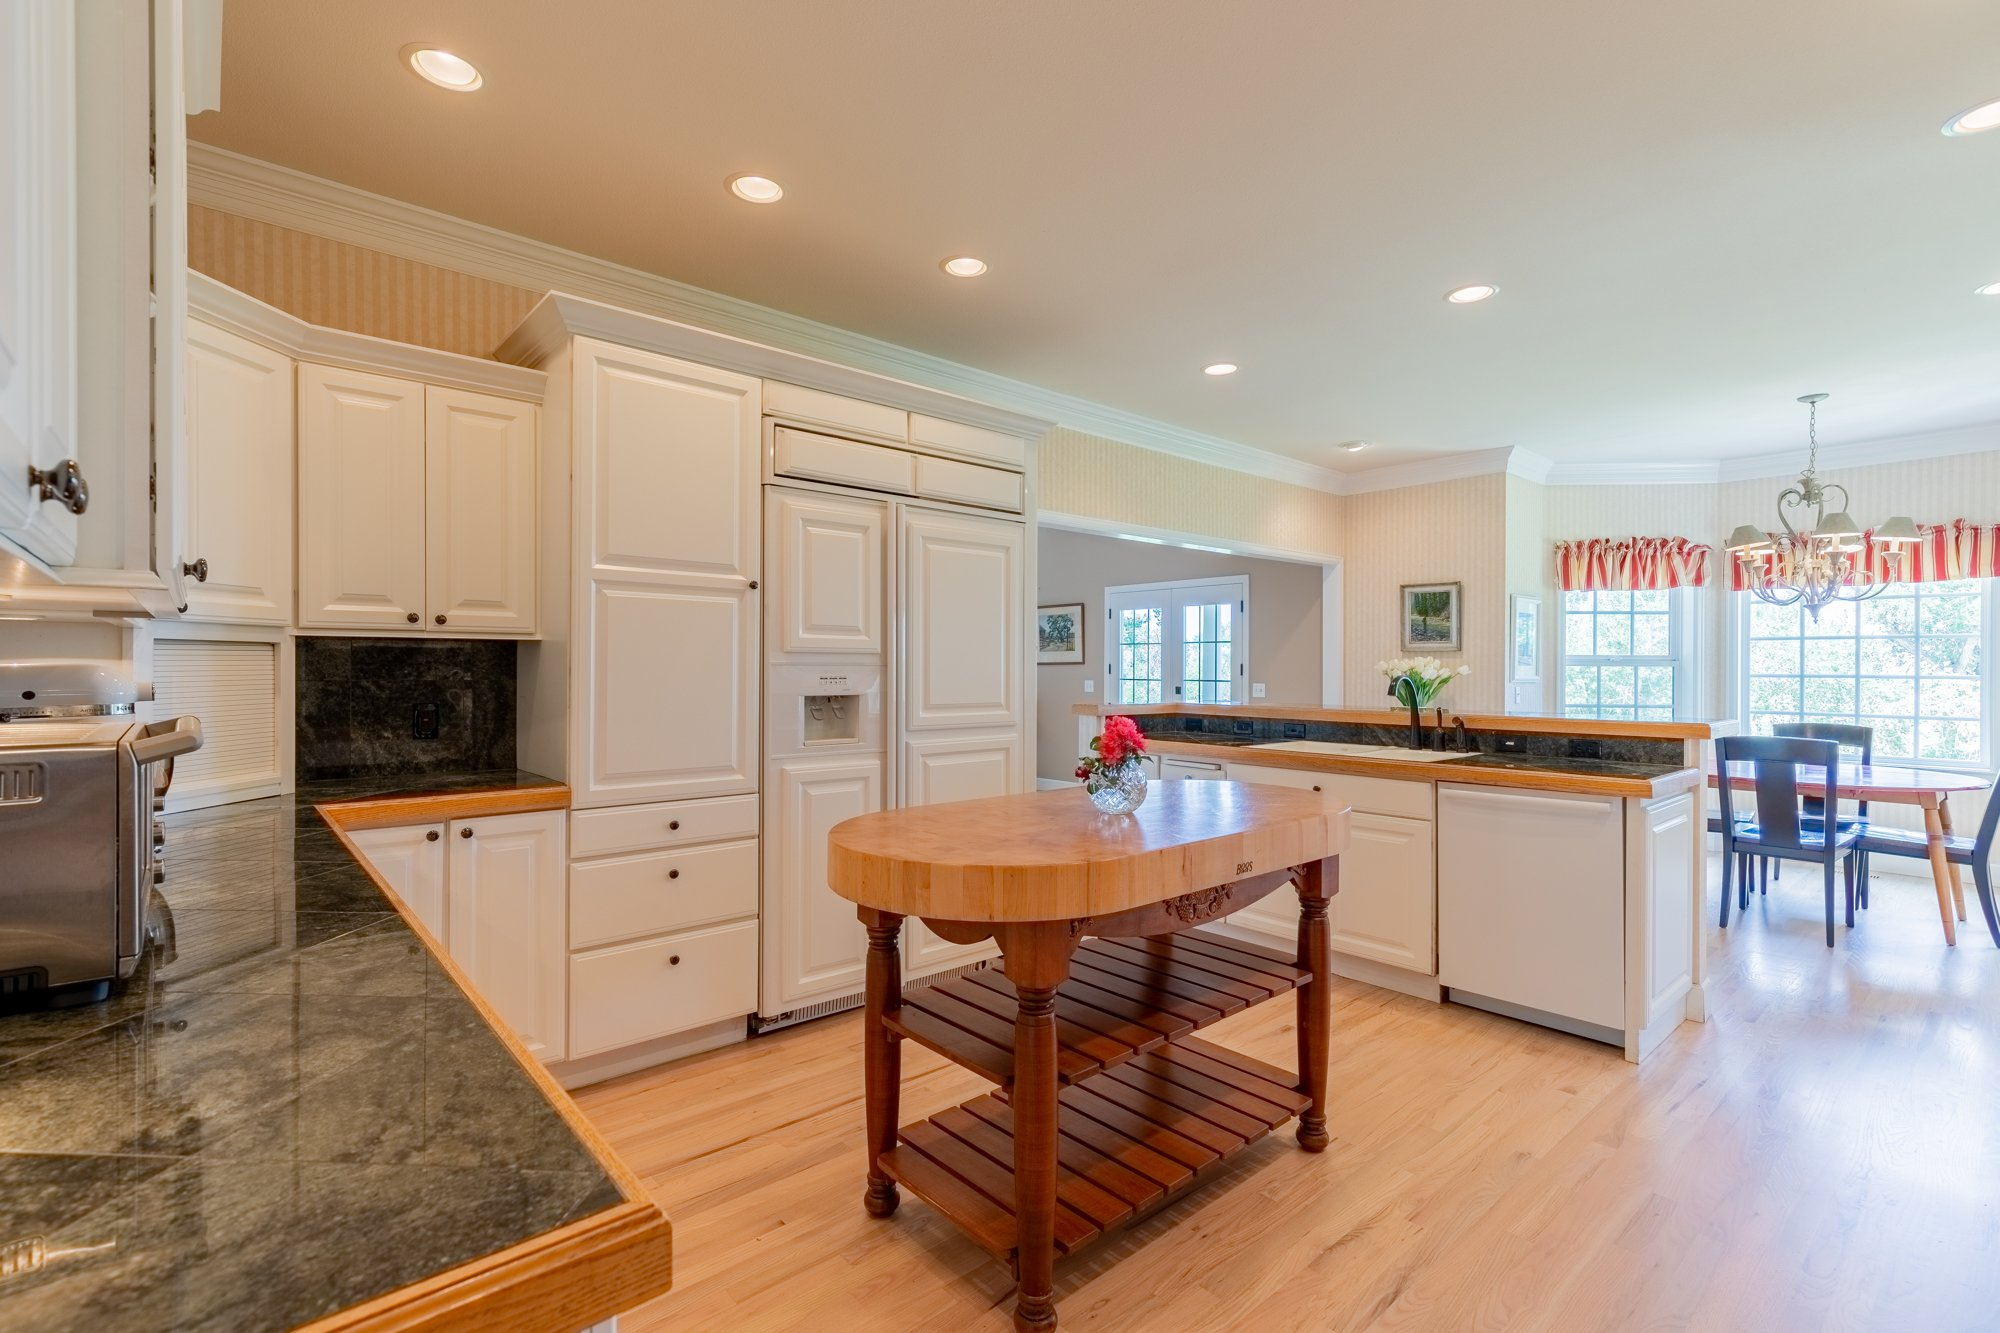 Kitchen with Prep Island - 2049 Brook Way Montrose, Co 81403 - Atha Team Luxury Real Estate